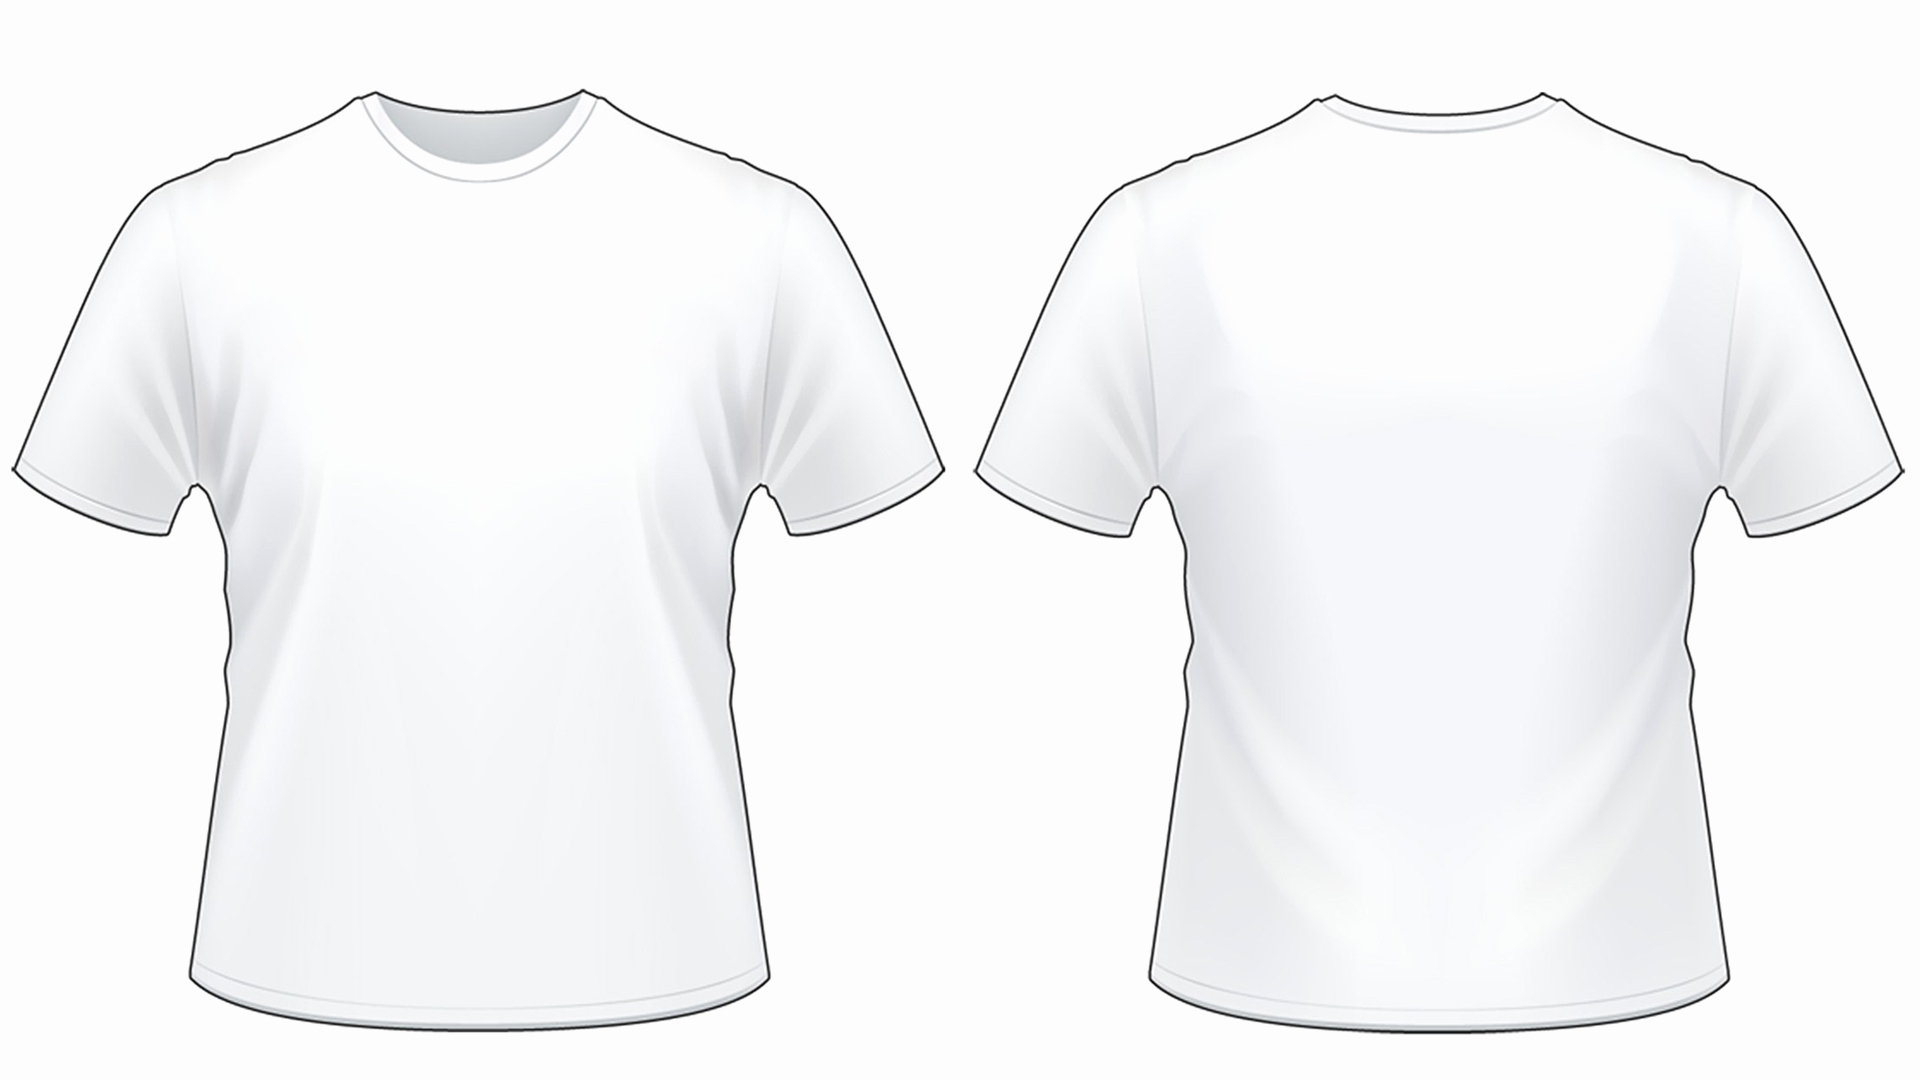 T Shirt Template Photoshop Elegant Blank Tshirt Template Worksheet In Png Hd Wallpapers